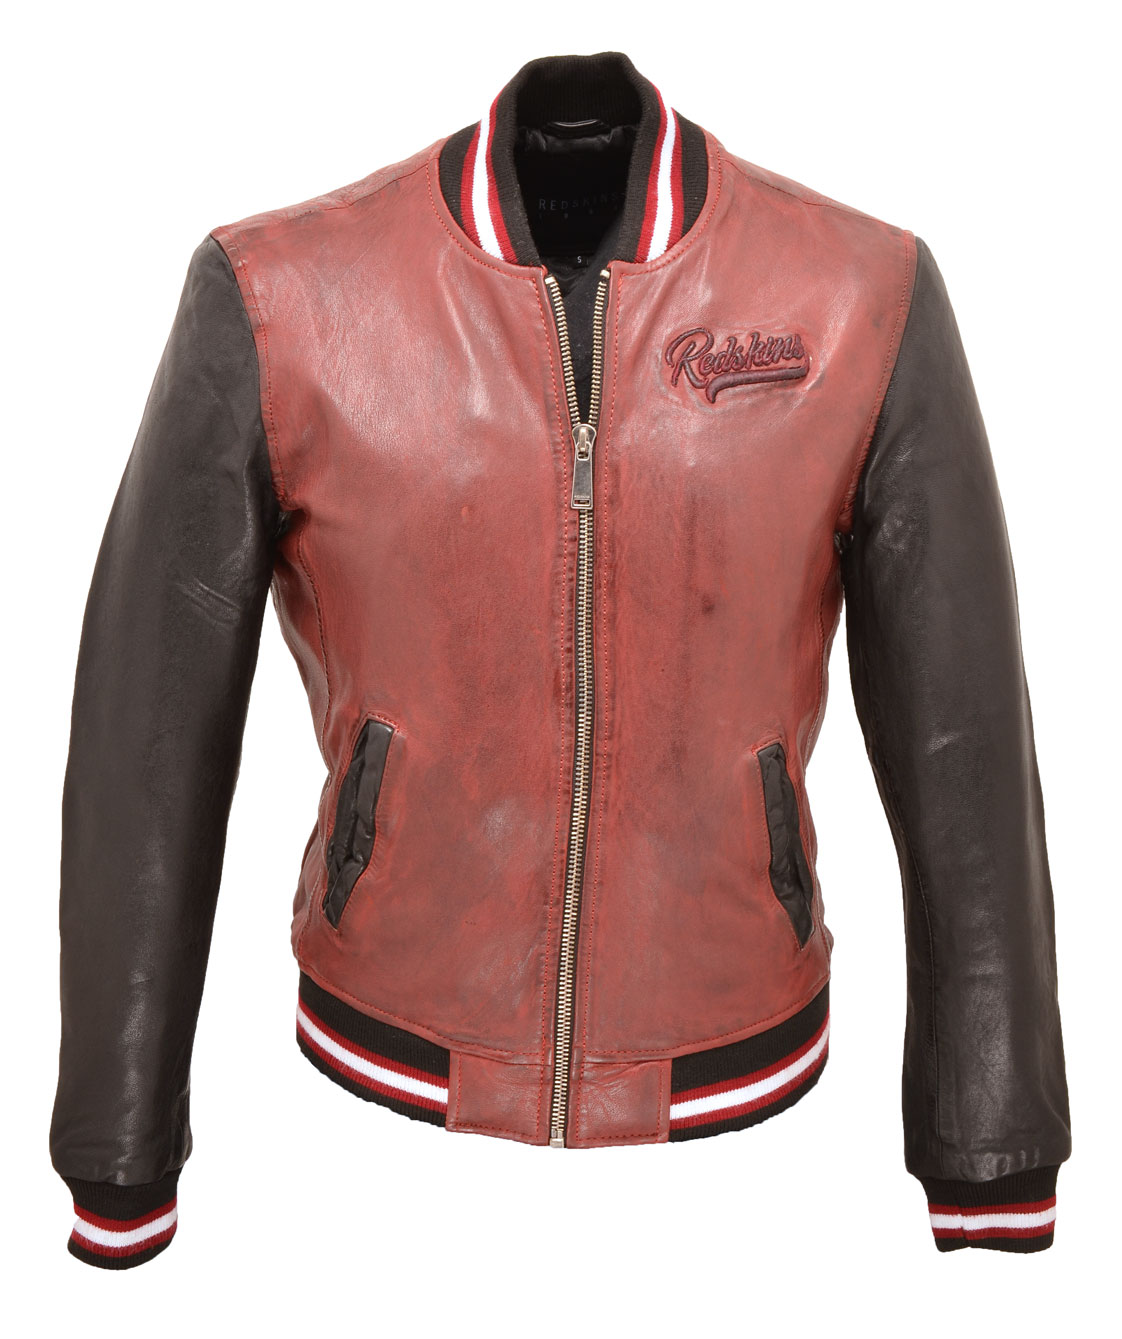 en soldes e0fde 8a080 Leather jacket man red and black style teddy 118